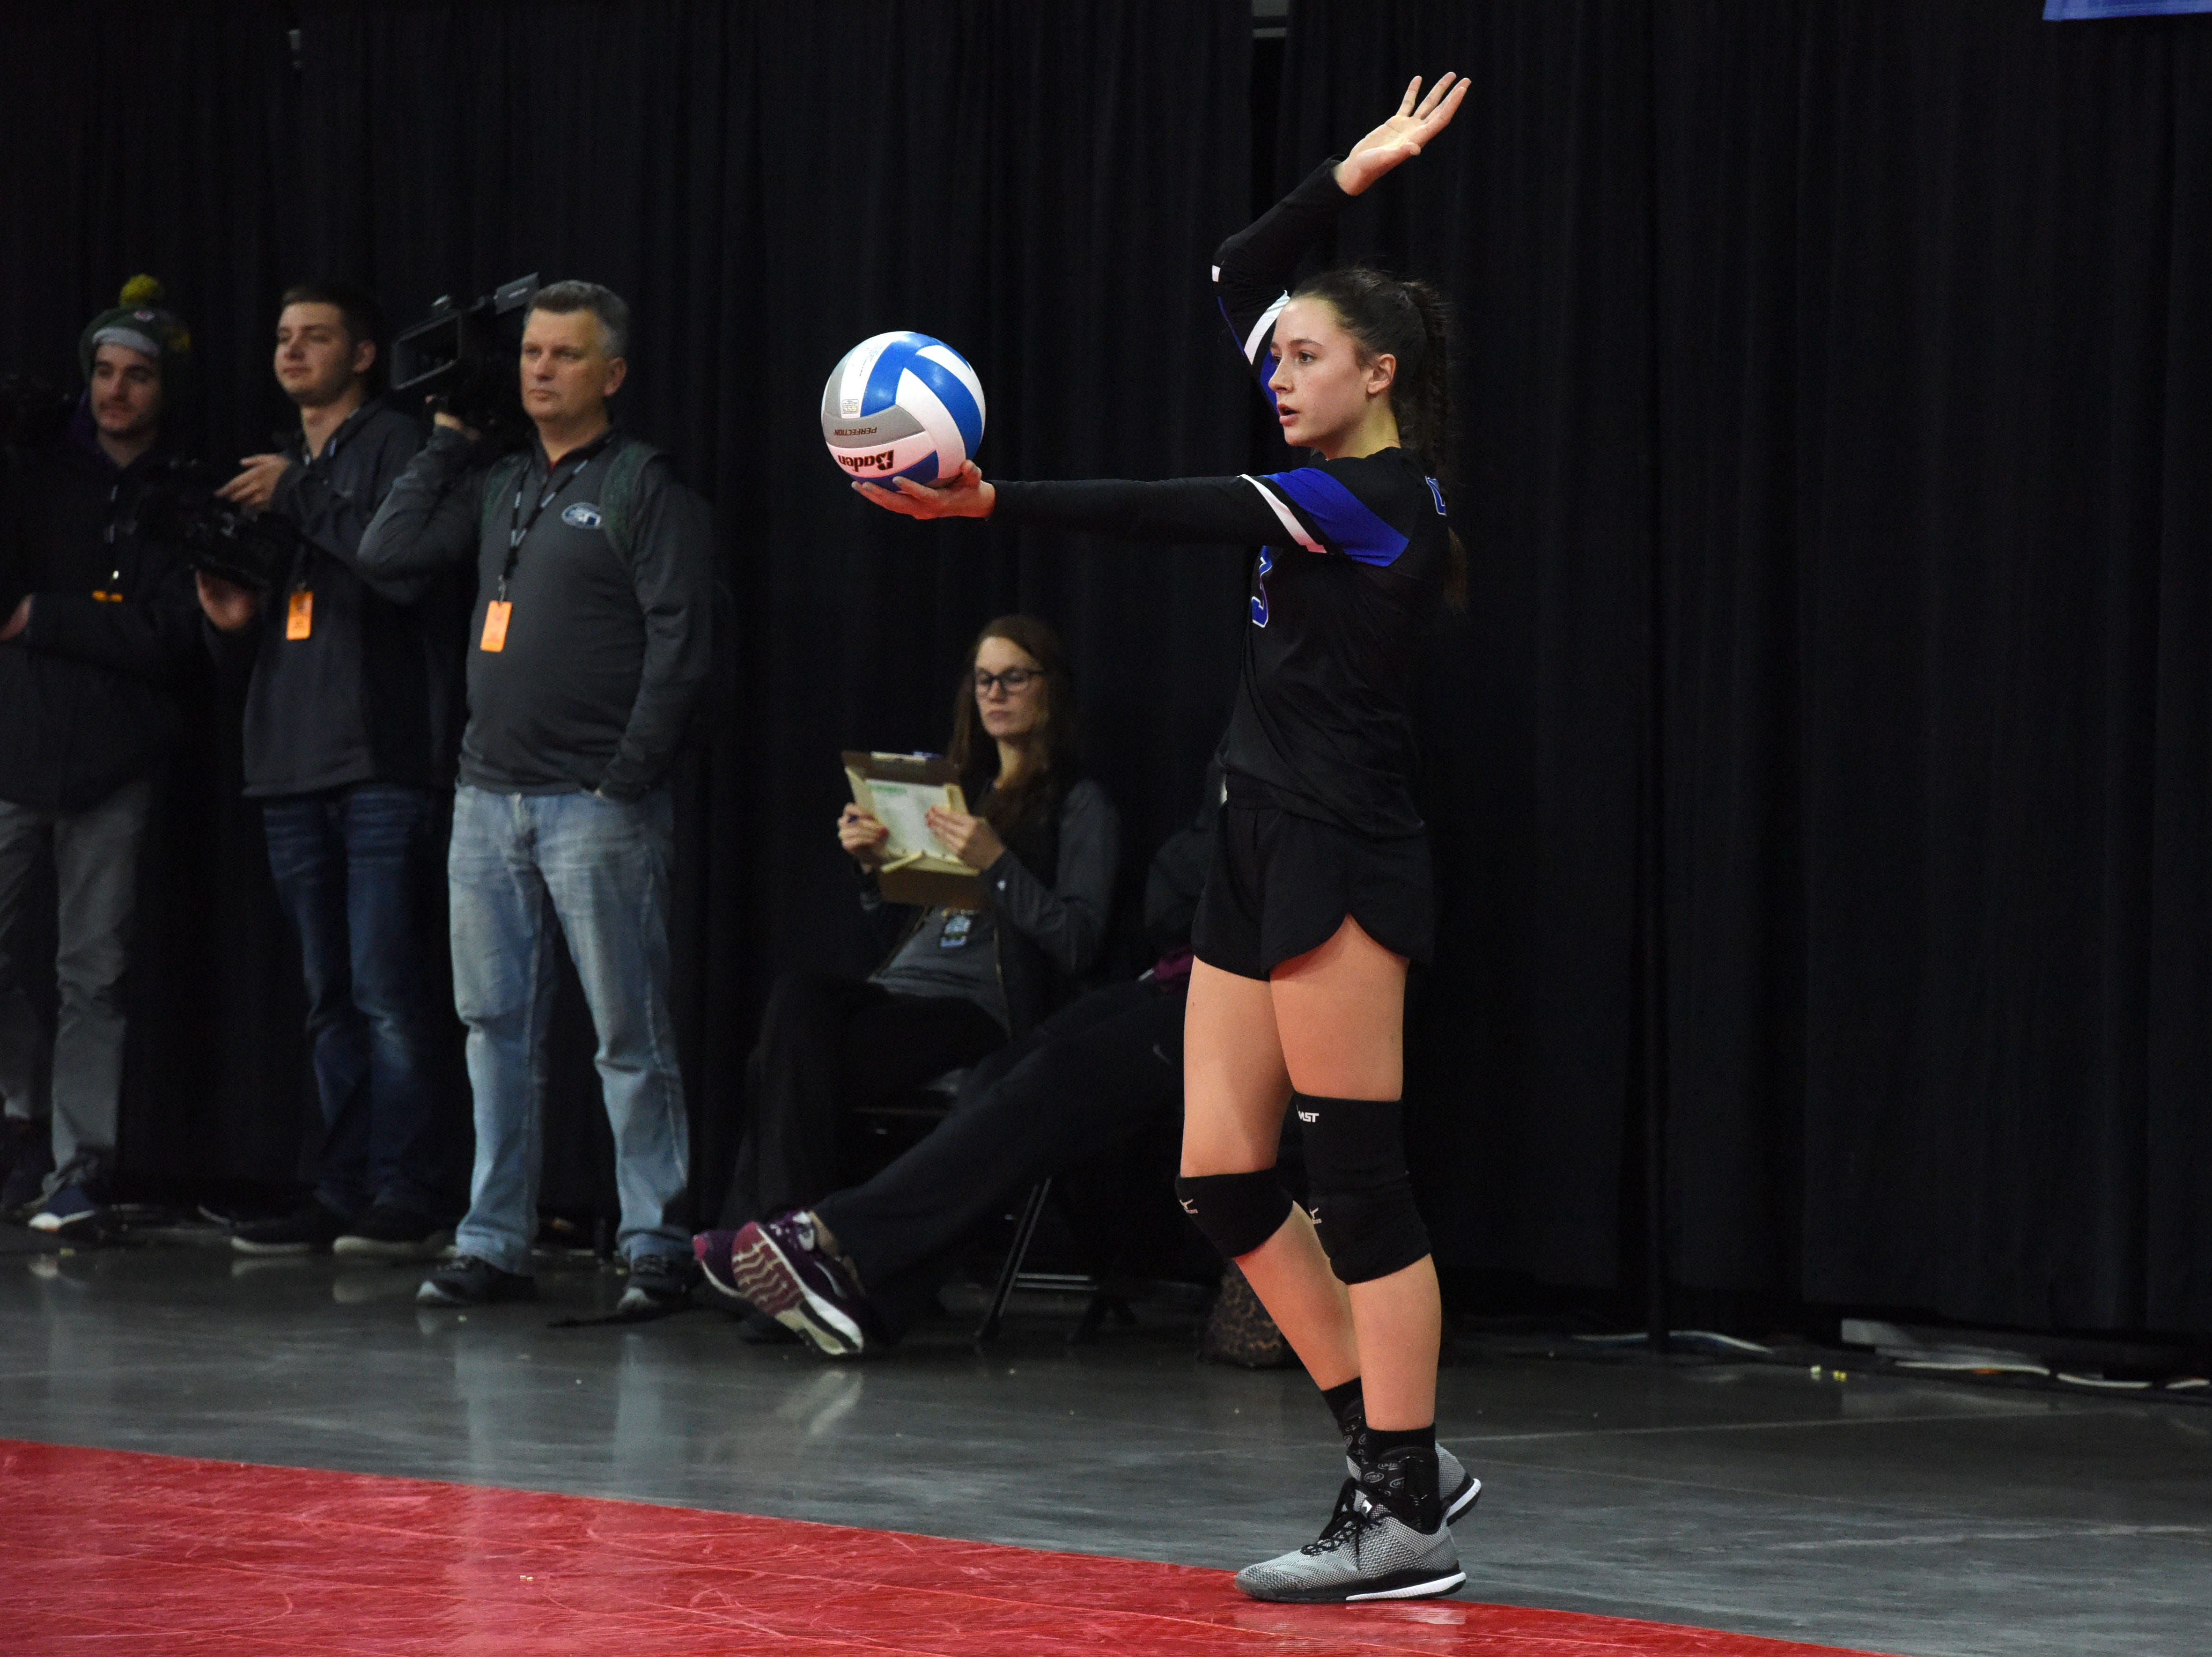 Sioux Falls Christian's Abby Glanzer (3) prepares to serve the ball during a match against Miller, Saturday, Nov. 17, 2018, at the Denny Sanford Premier Center in Sioux Falls, S.D.